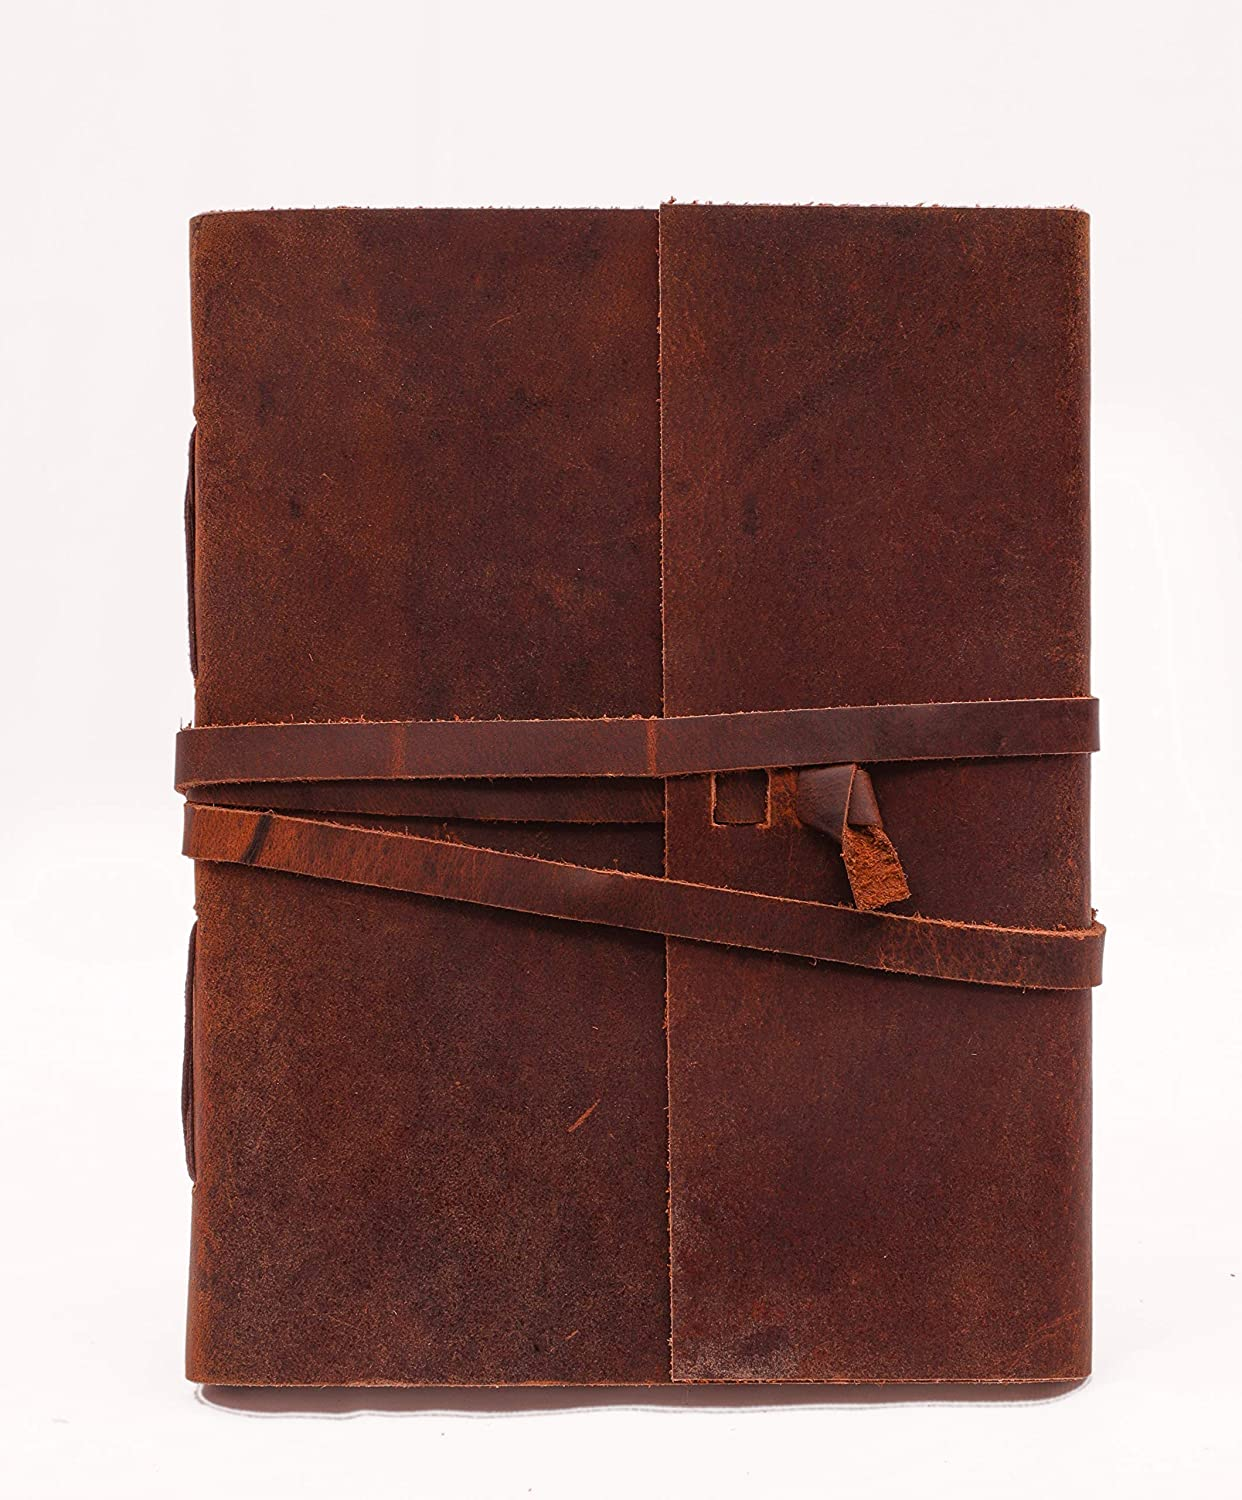 Leather Journal for Men & Women, Leather Blank Book, Poetry Journal, Unlined Journal Notebooks & Journals to Write in for Women, Mens Journal Leather Bound Writing Notebook (6x8 in)